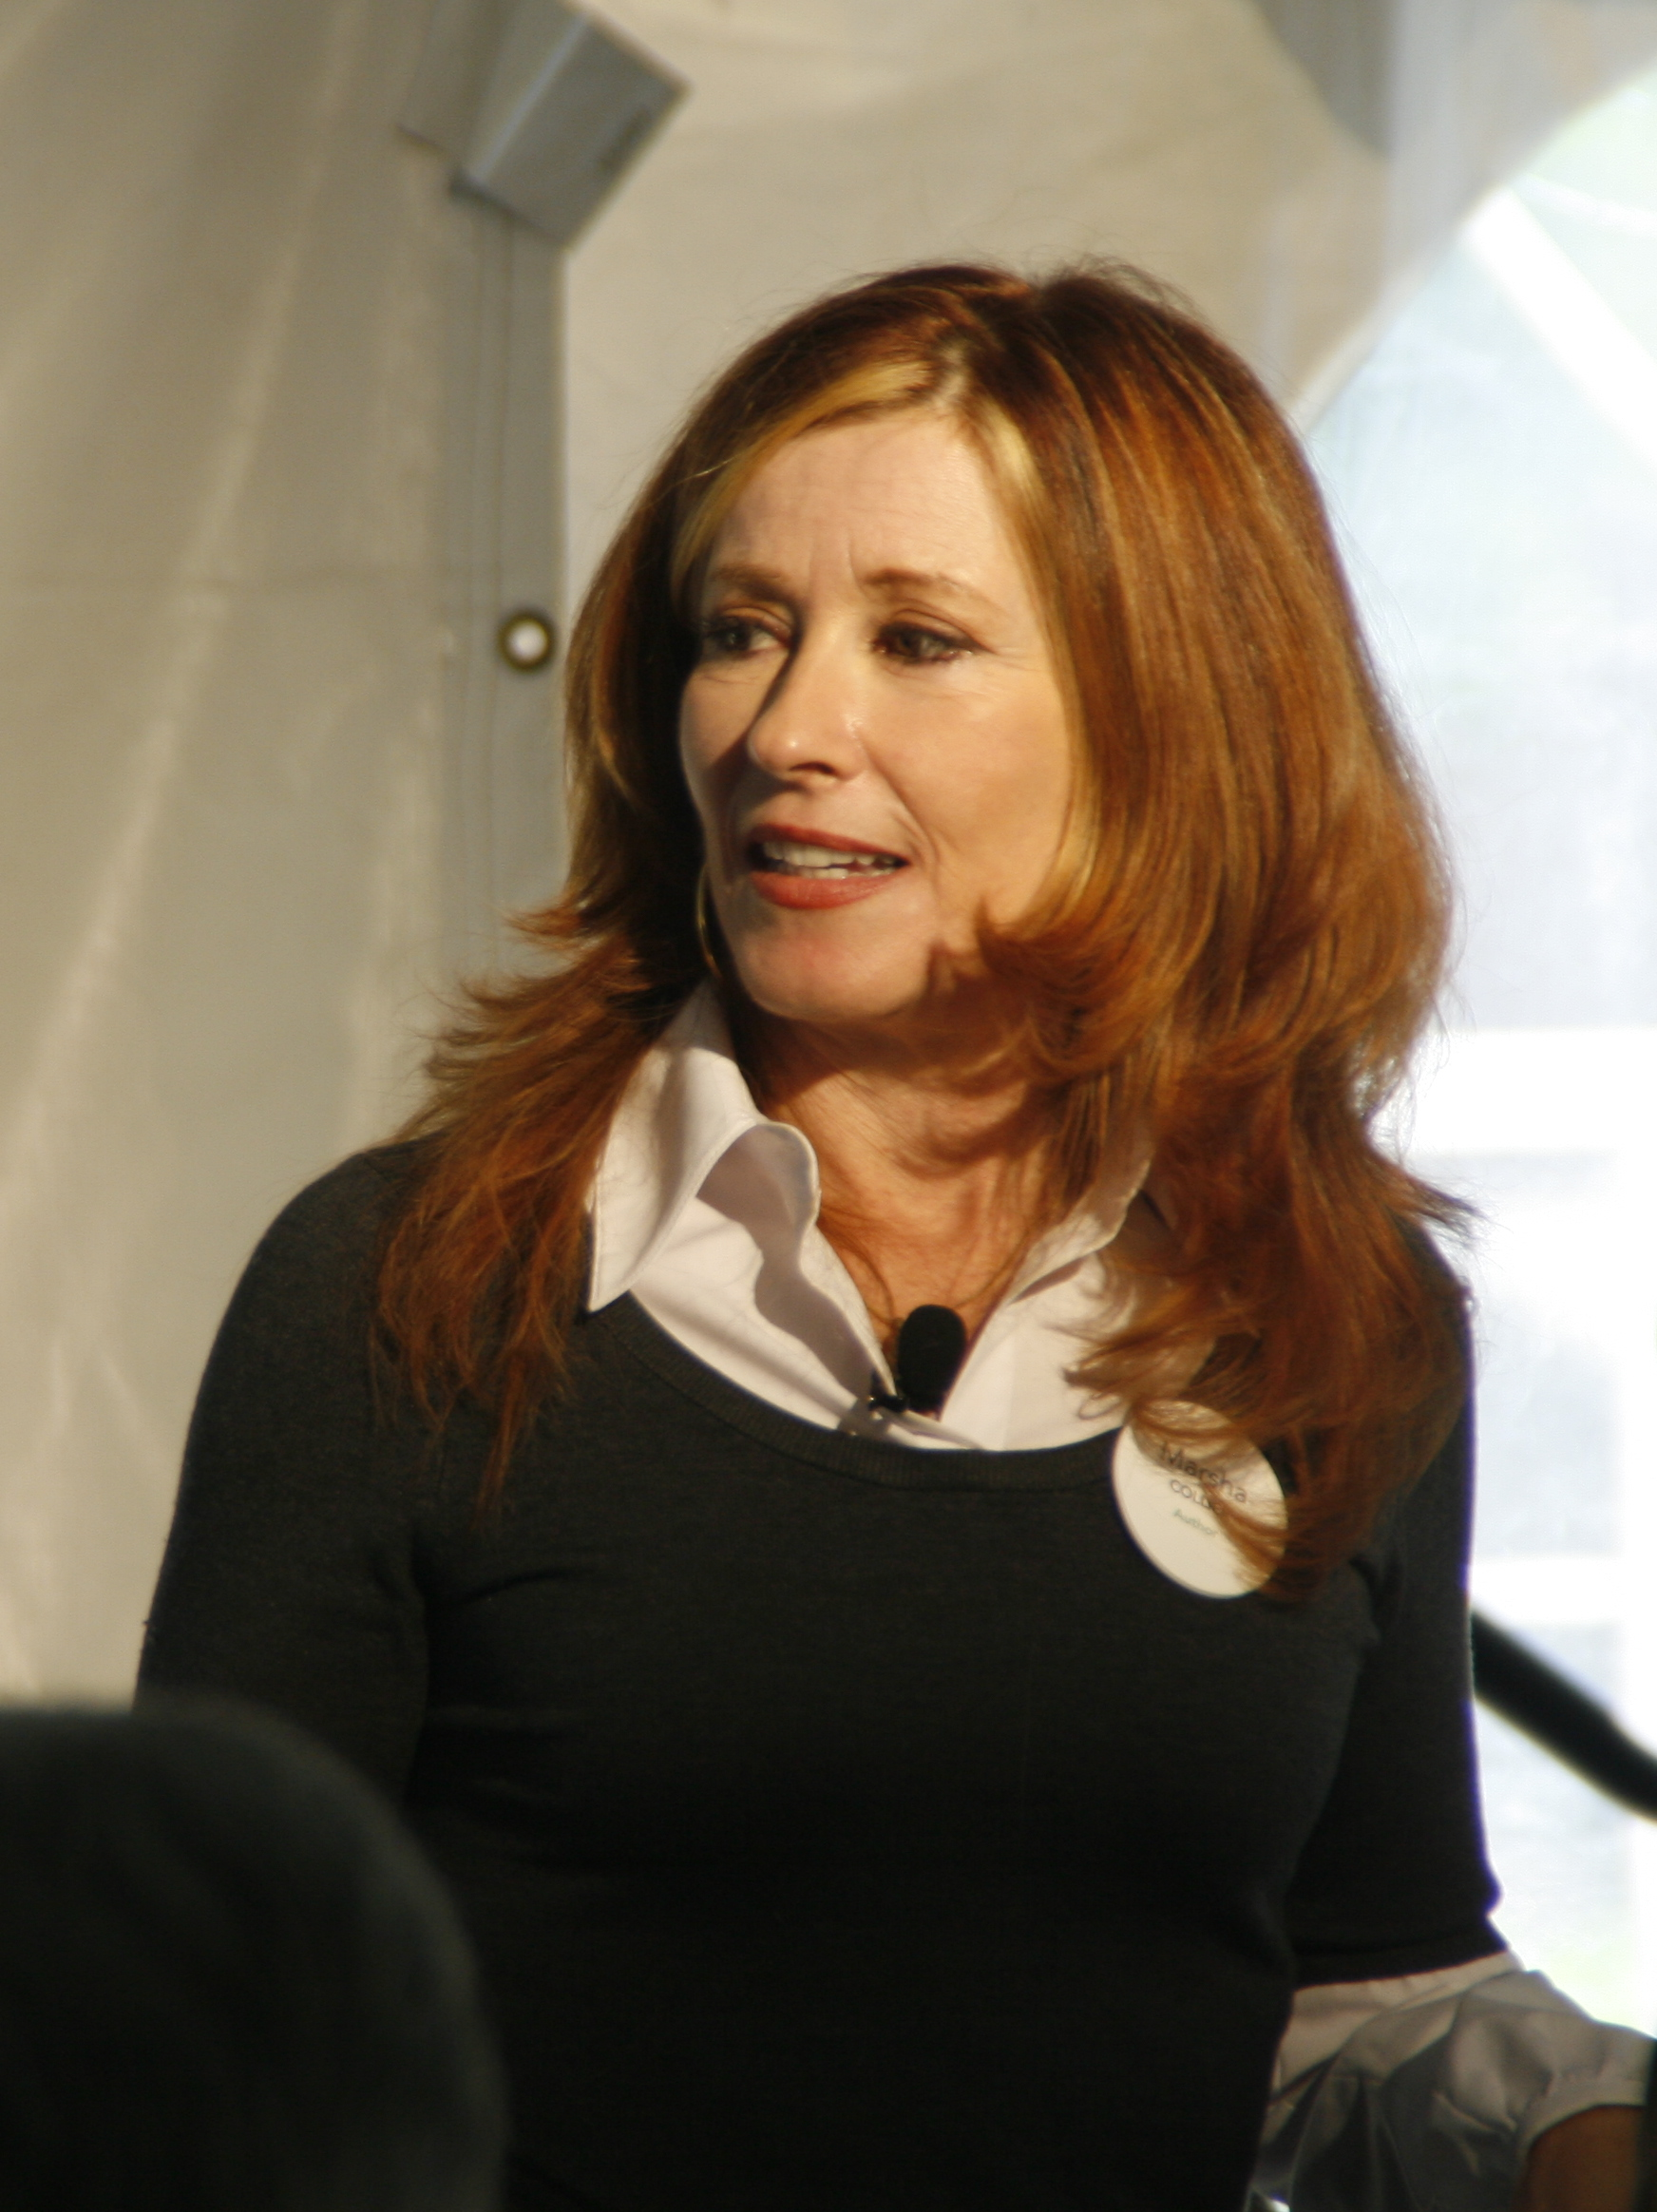 Marsha Collier at iCitizen in March 2008